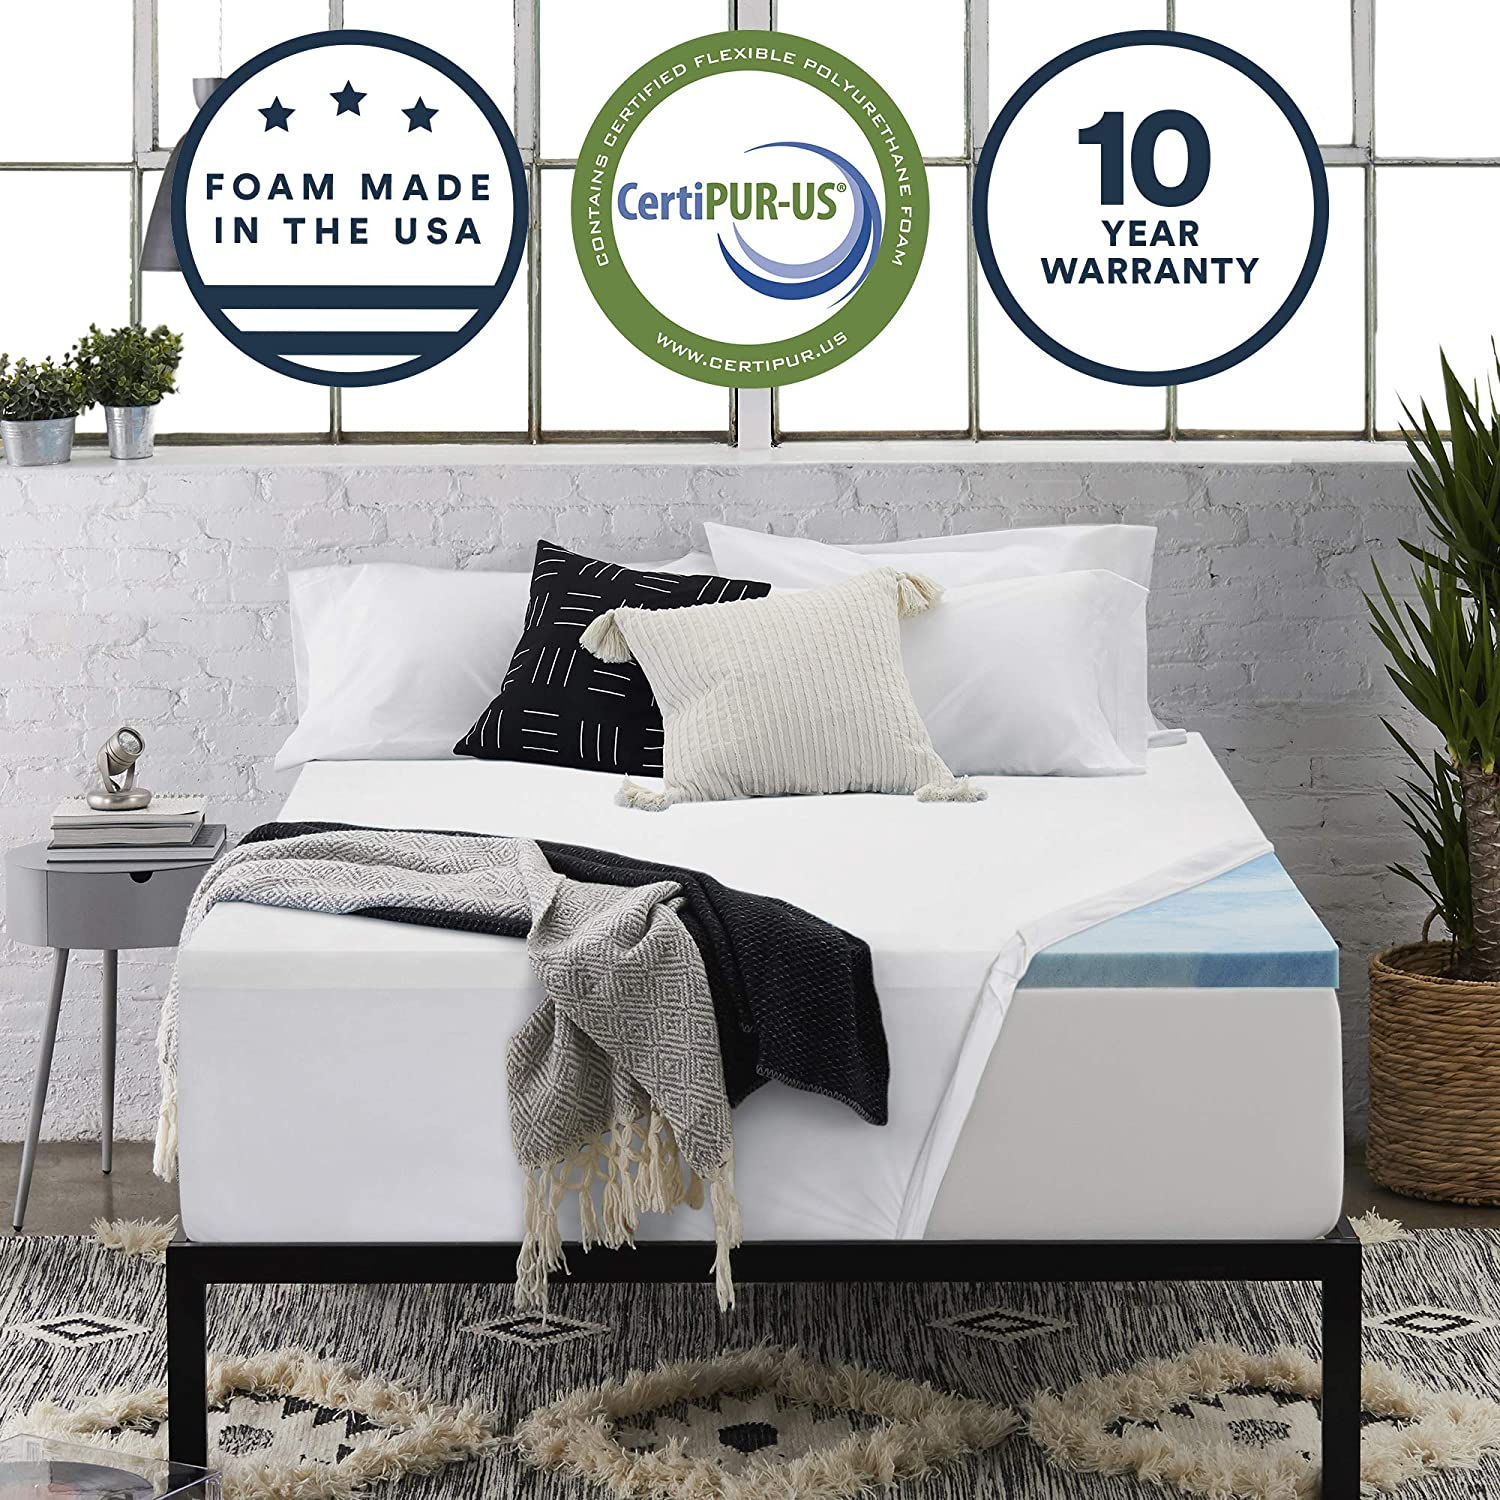 Sleep Innovations 2.5-inch Gel Memory Foam Mattress Topper with 100 Cotton Cover Full, Made in The USA with a 10-Year Warranty